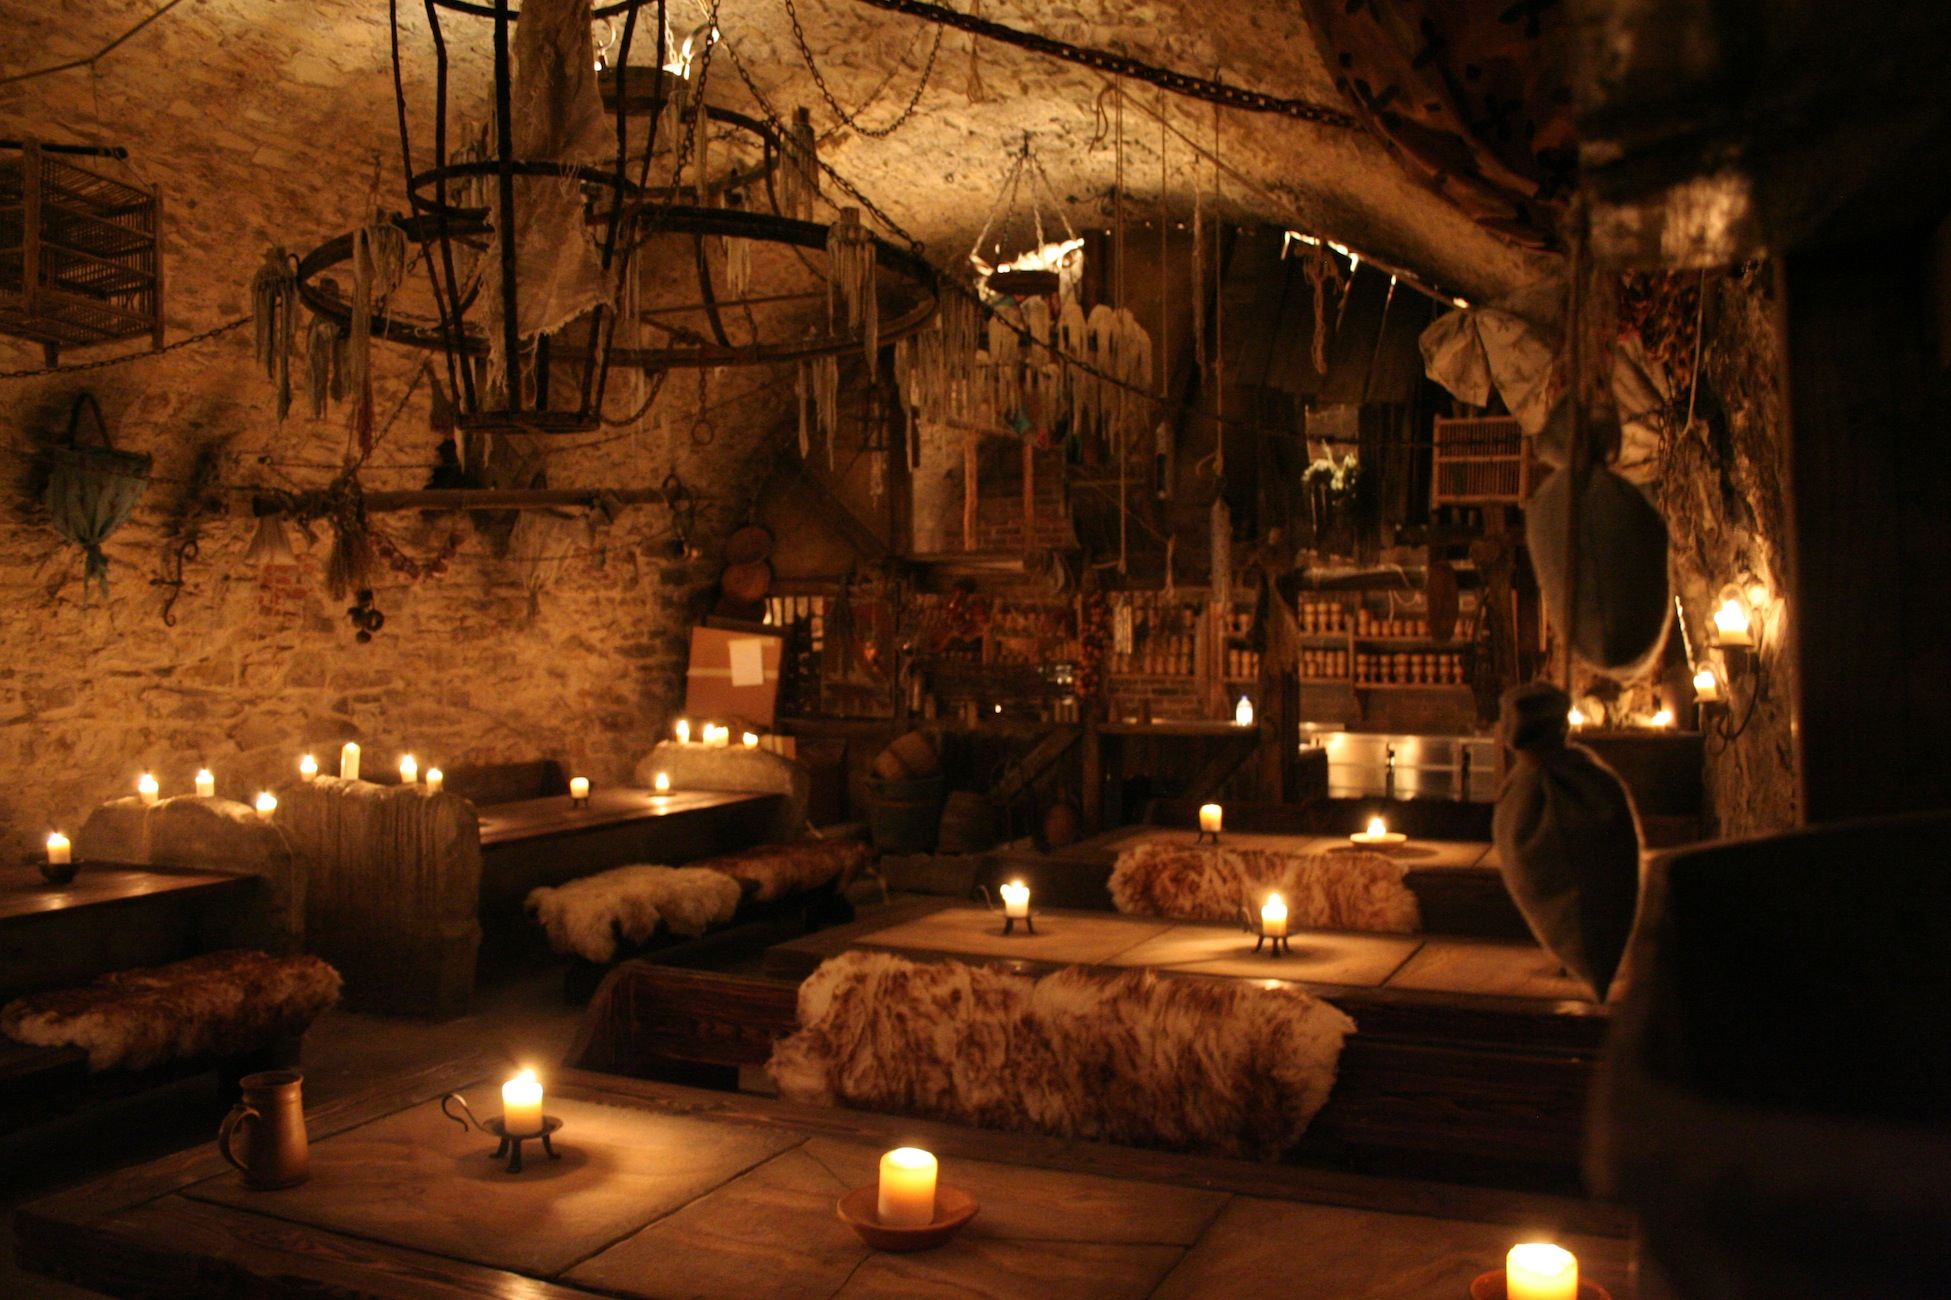 Medieval style game of thrones restaurants in europe